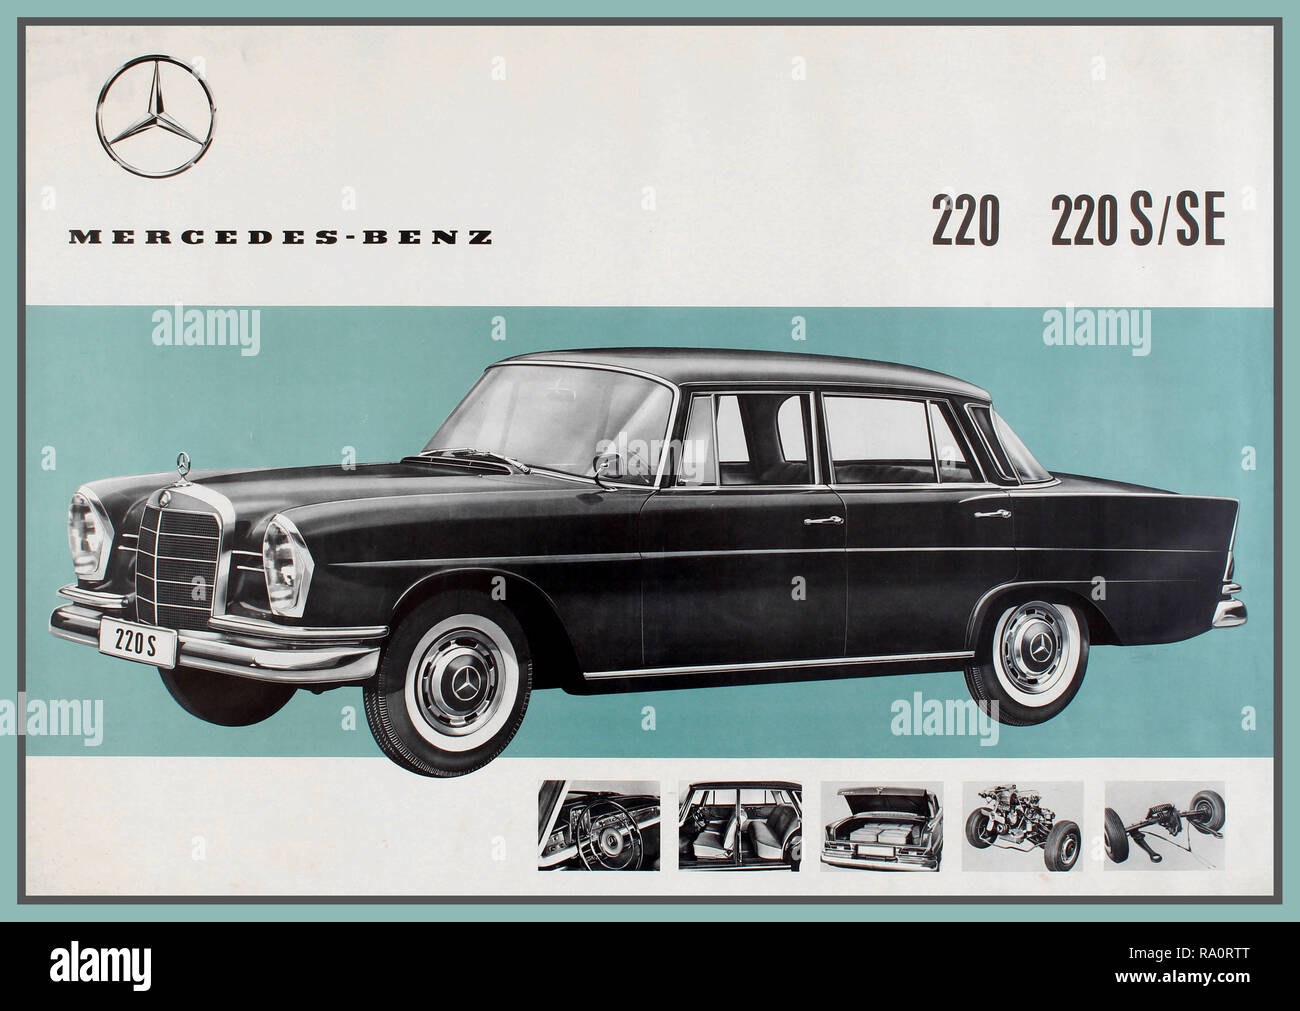 Vintage 1950's German Advertising Poster for Mercedes-Benz 220, 220 S/SE Saloon 4 door sedan Motorcars. Mercedes-Benz W128 chassis code  At the Geneva Motor Show 1954, the Mercedes-Benz 220 was launched.  The Mercedes-Benz 220 was a full-size luxury car. This production was the first in the Mercedes range to have a low-pivot point, single-joint swing axle. It was also the pioneer of the six-cylinder system. - Stock Image